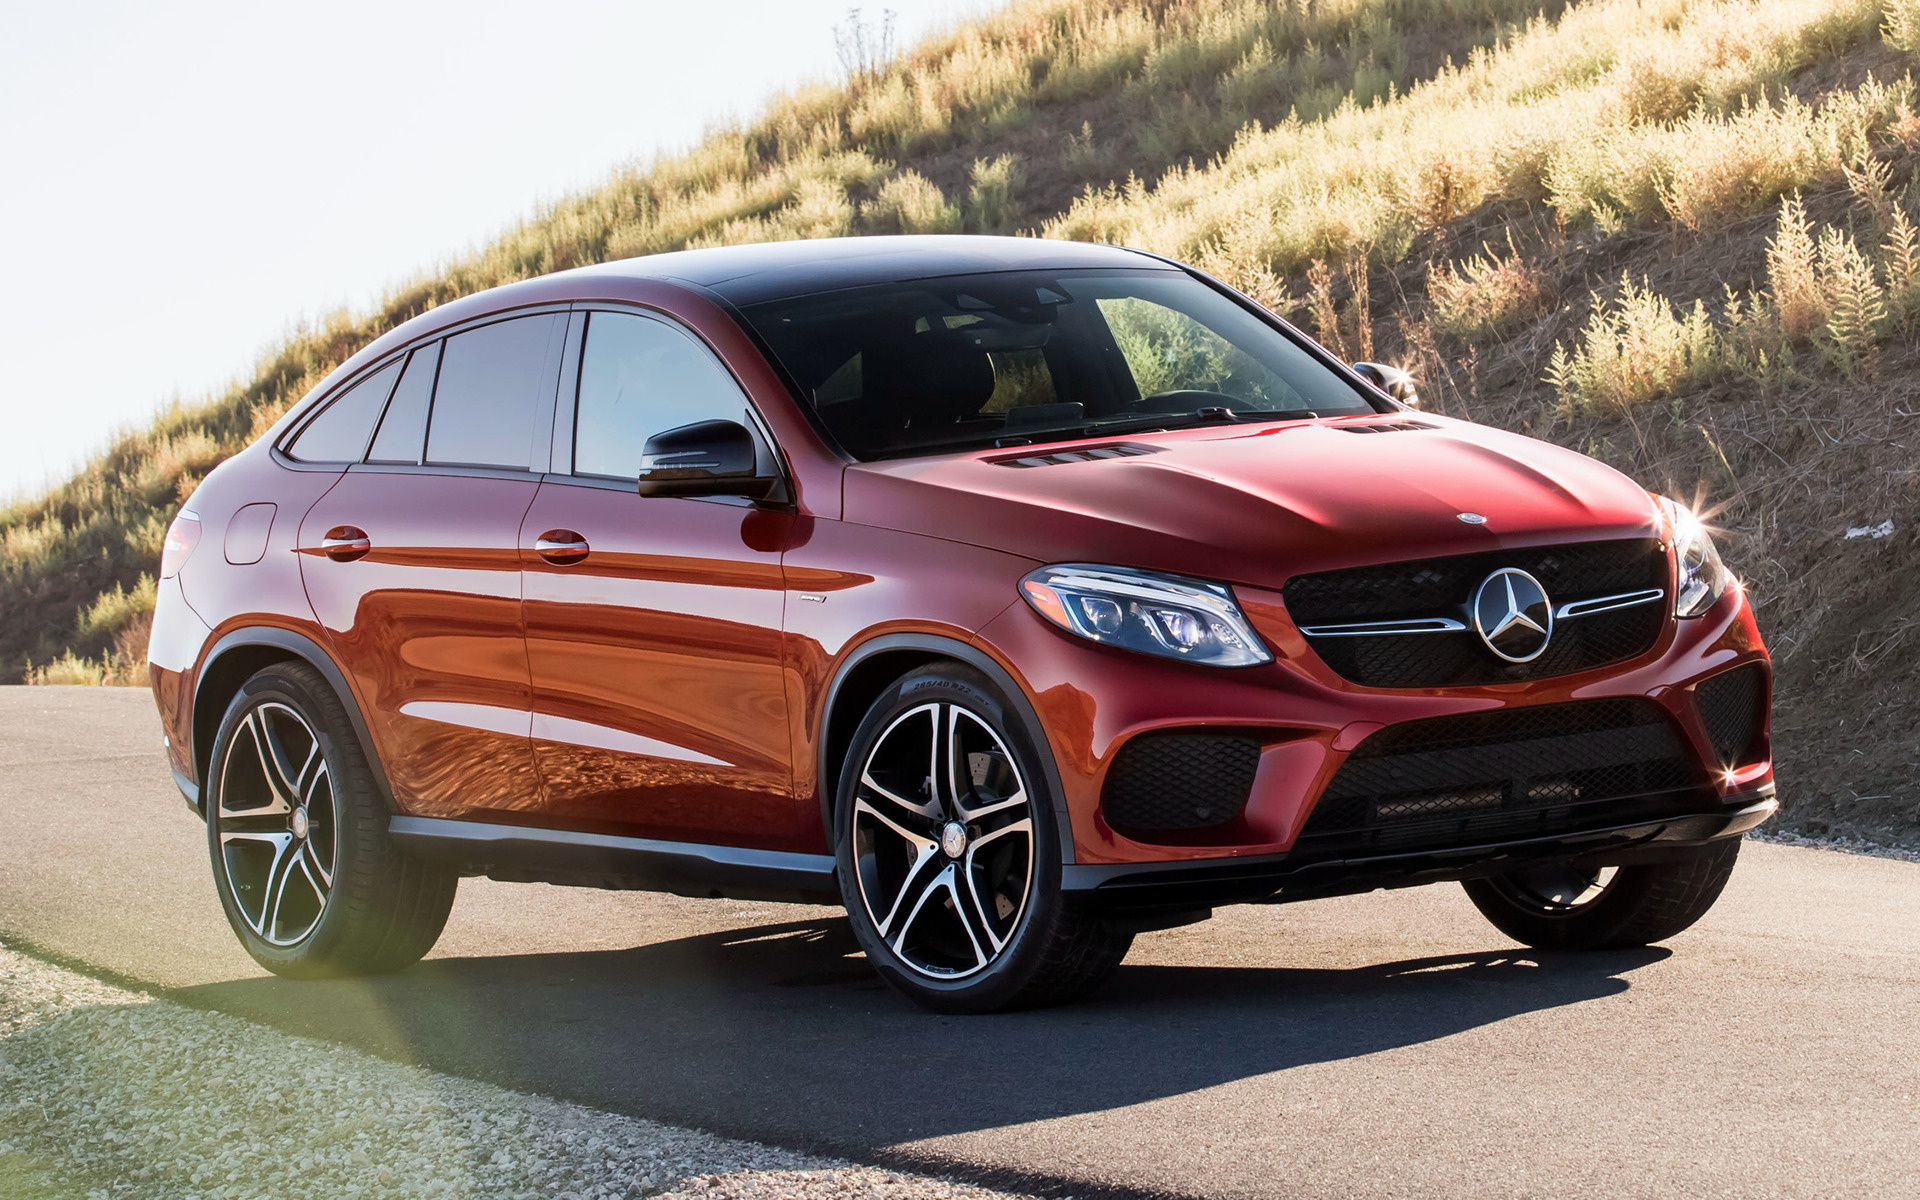 Most Expensive Mercedes >> 2016 Mercedes-Benz GLE 450 AMG Coupe (US) - Wallpapers and ...